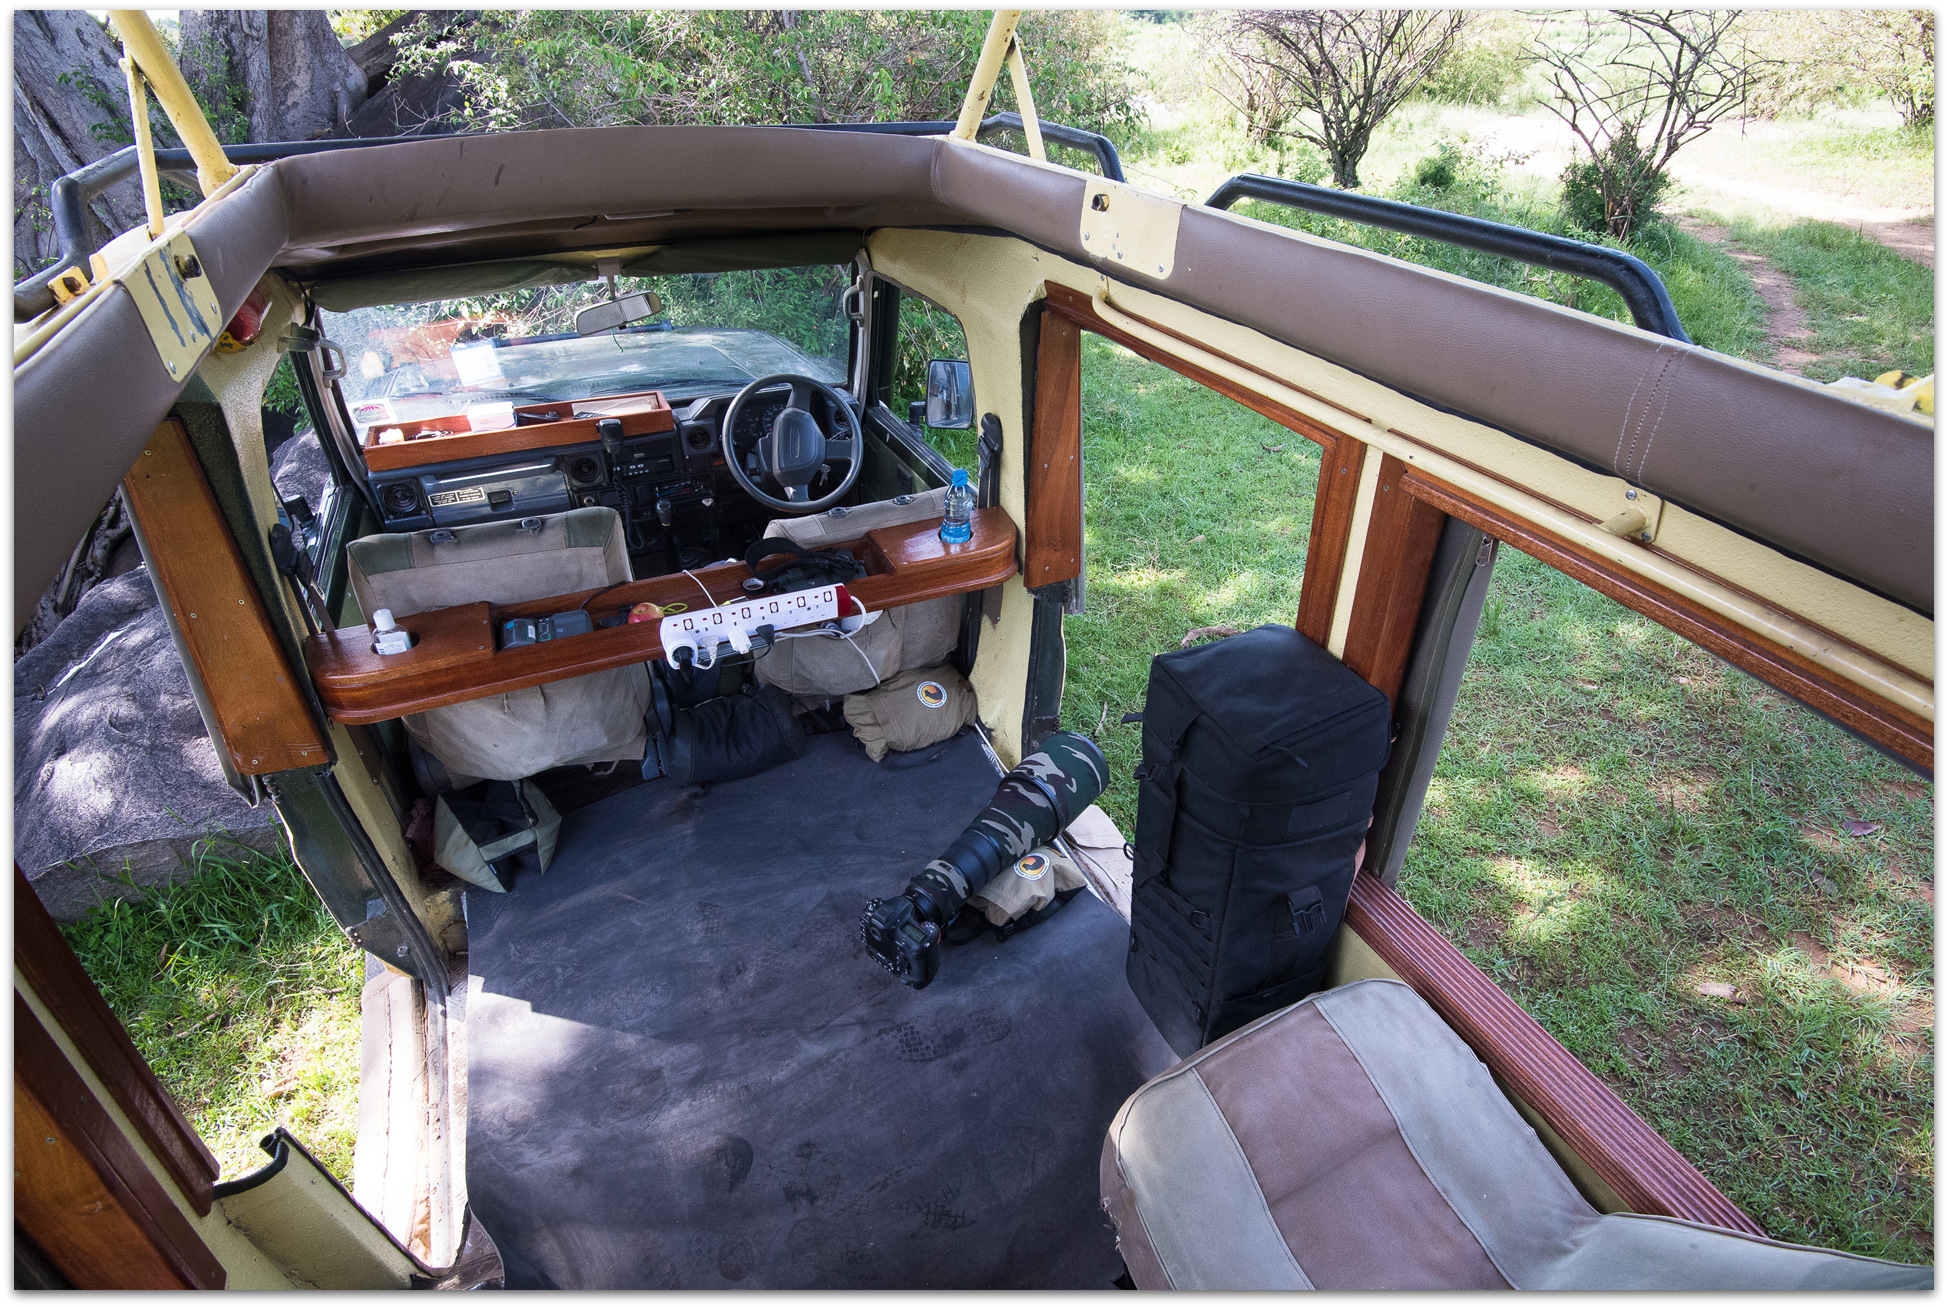 Inside a specially-adapted photographic safari vehicle